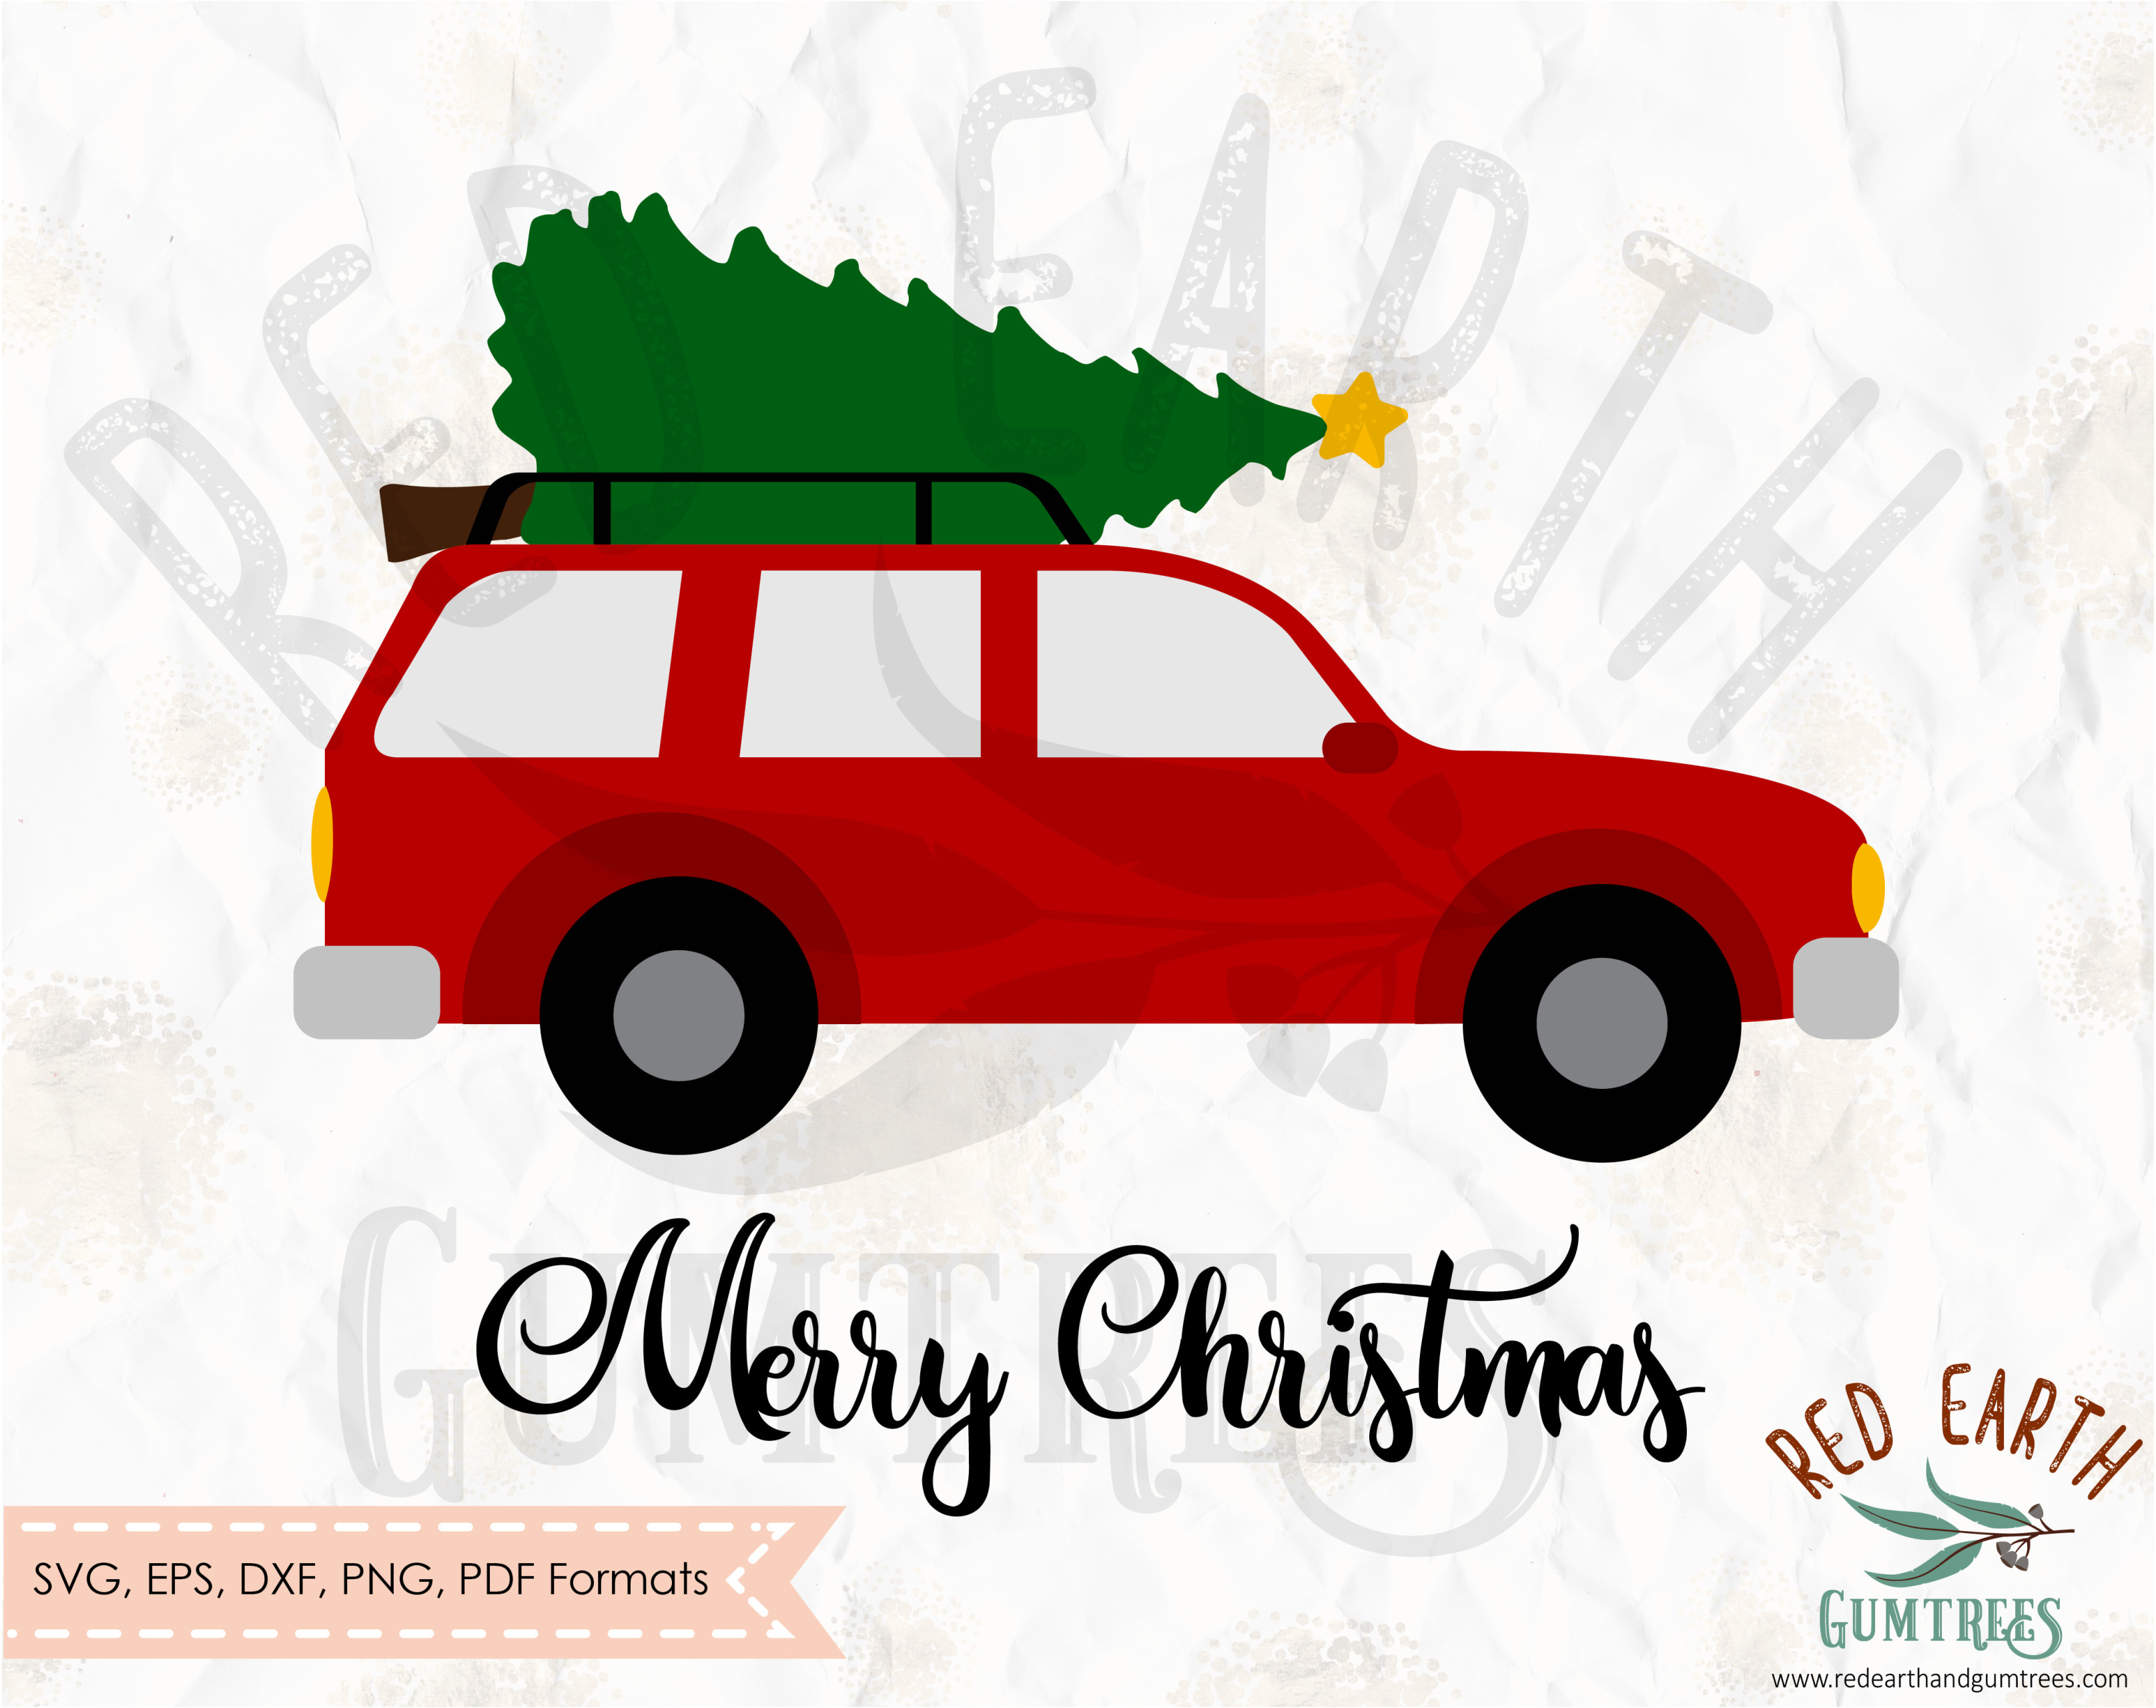 Car with Christmas tree on top in SVG, EPS, PDF, DXF, PNG formats.